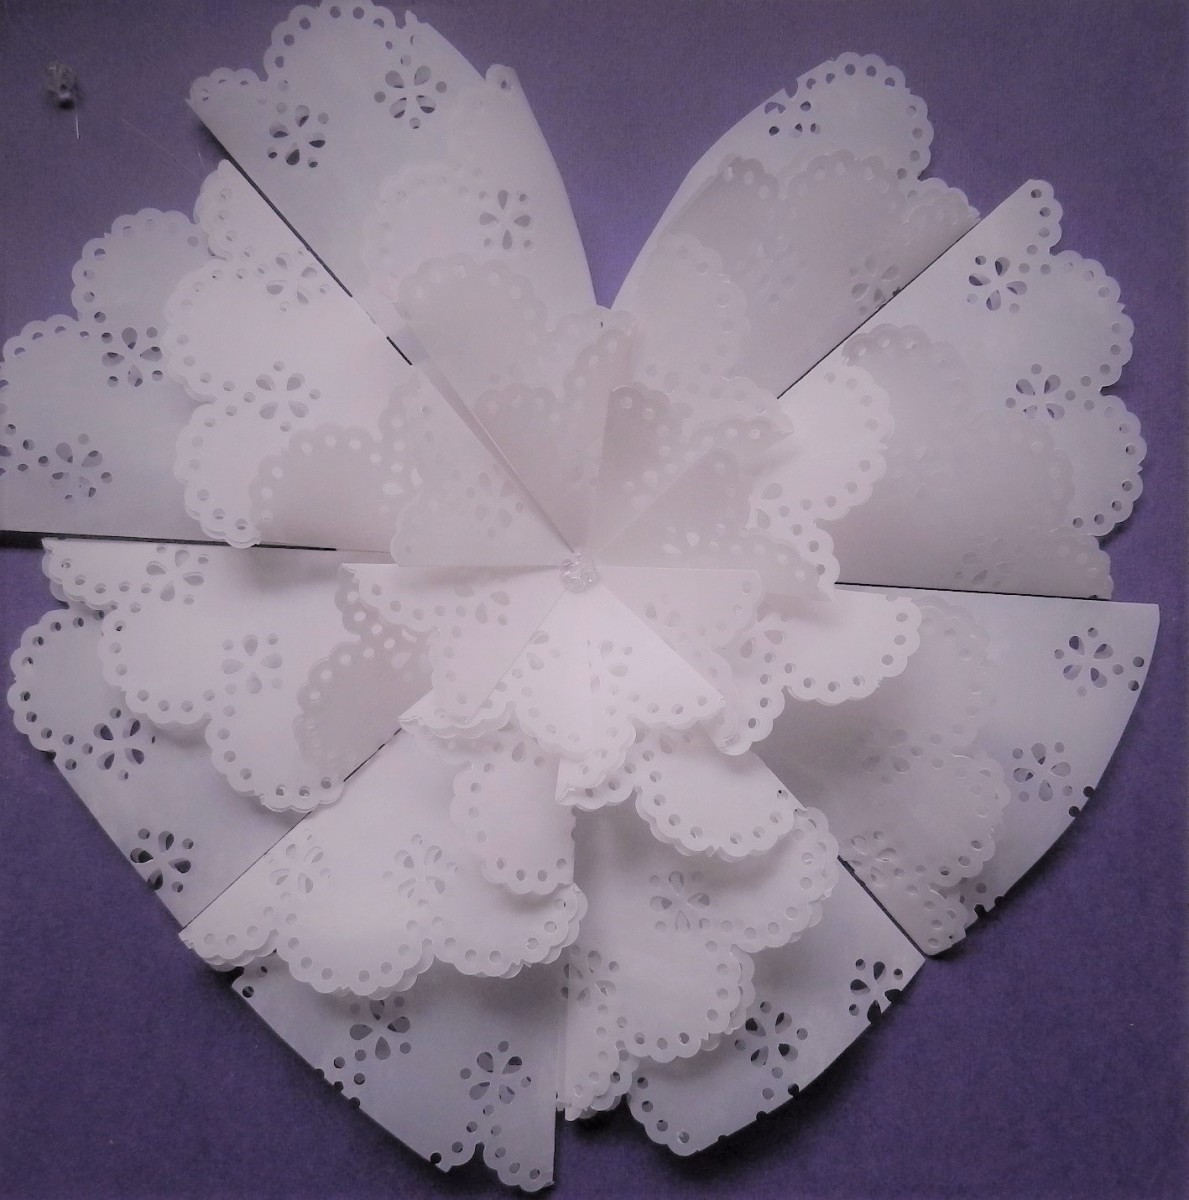 Use a circle doily punch and cut vellum rosette into a heart shape for Valentine's Day.